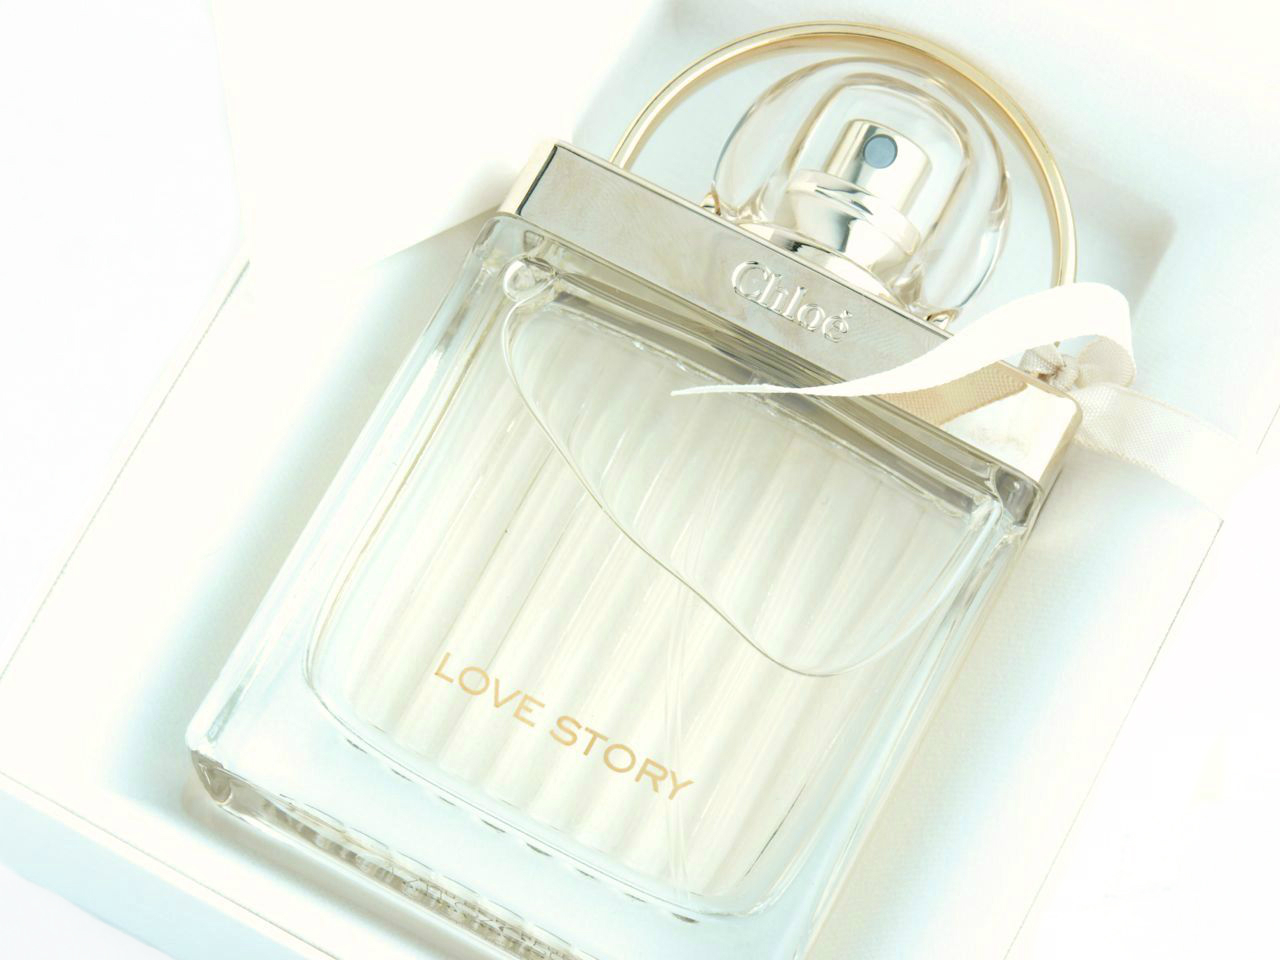 Chloe Love Story Eau de Parfum: Review